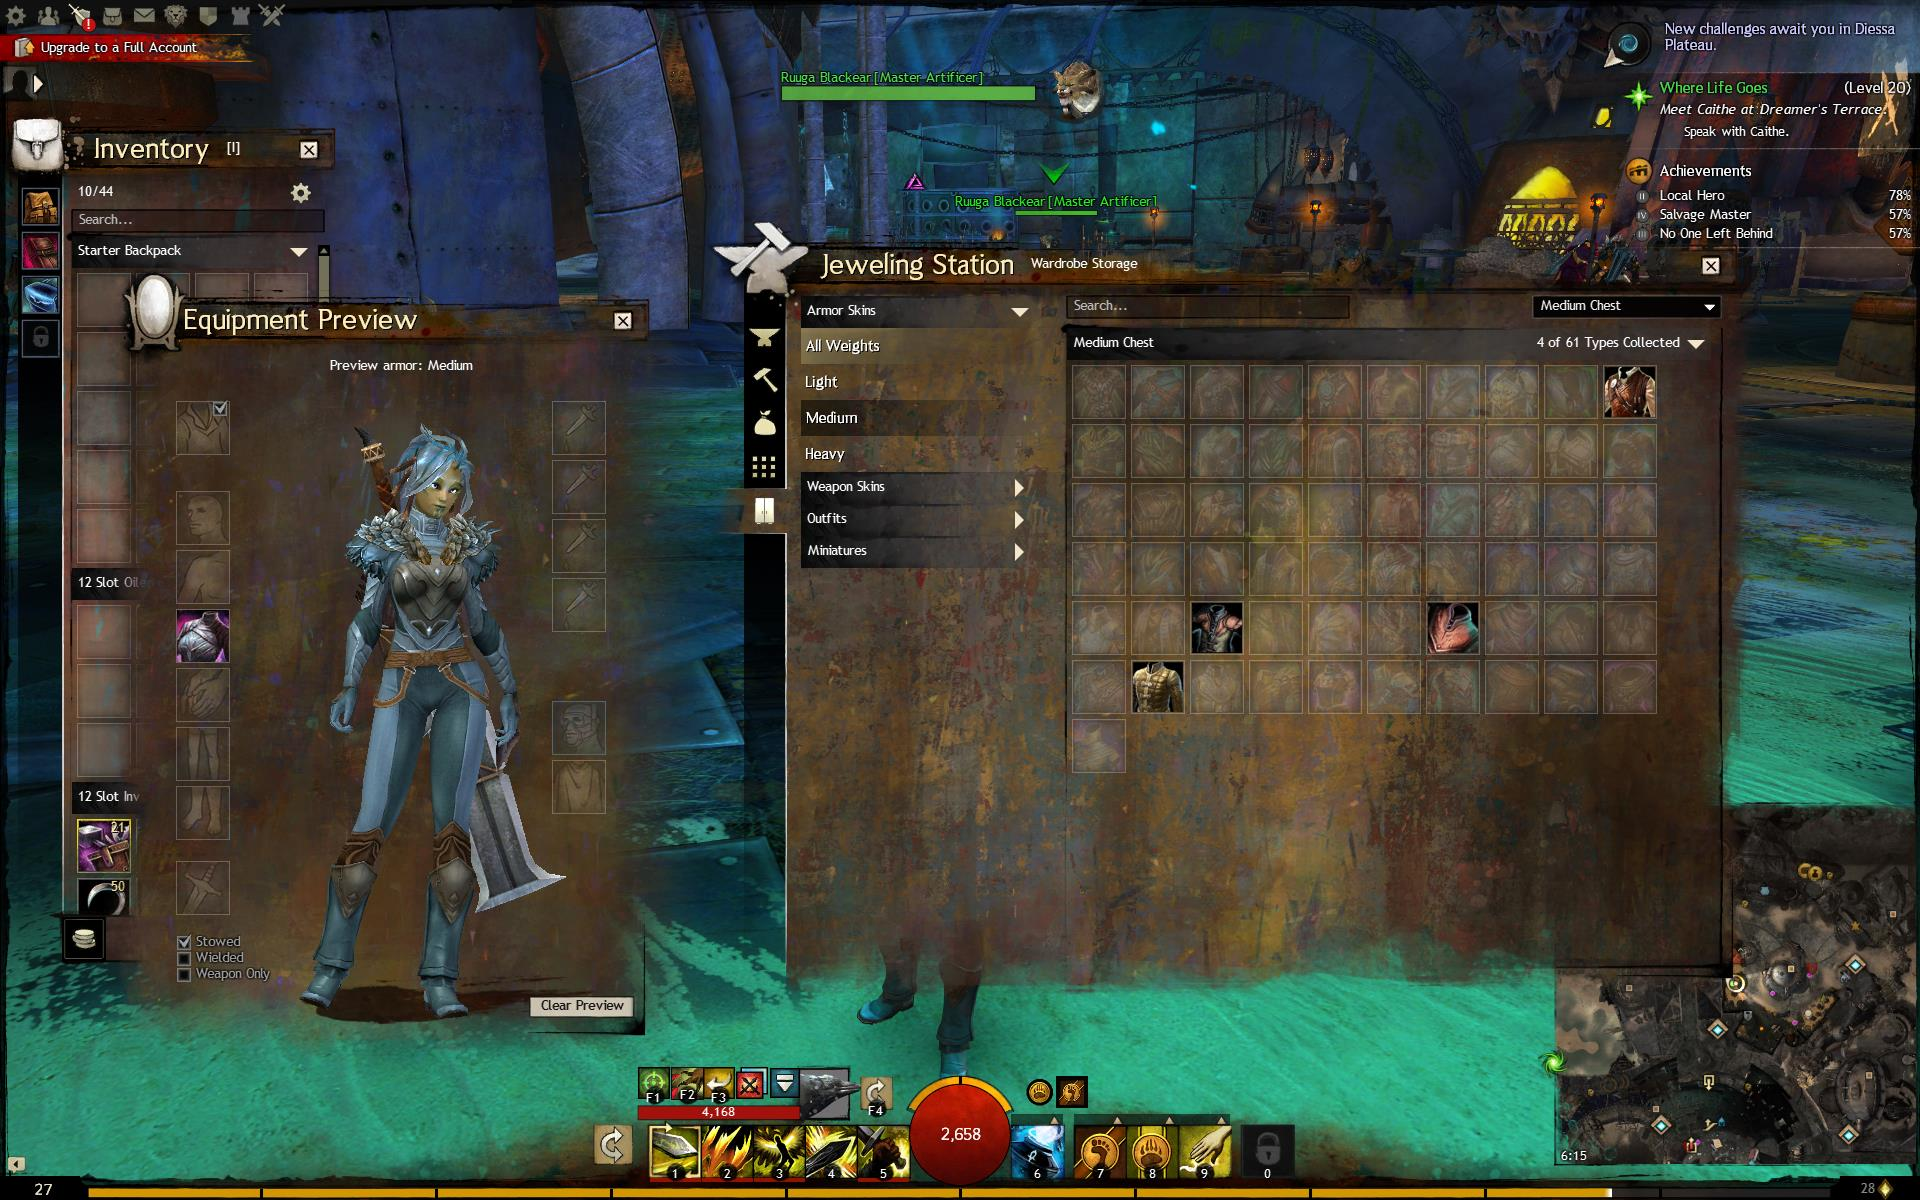 Guild Wars 2 Free to Play Guide & Review